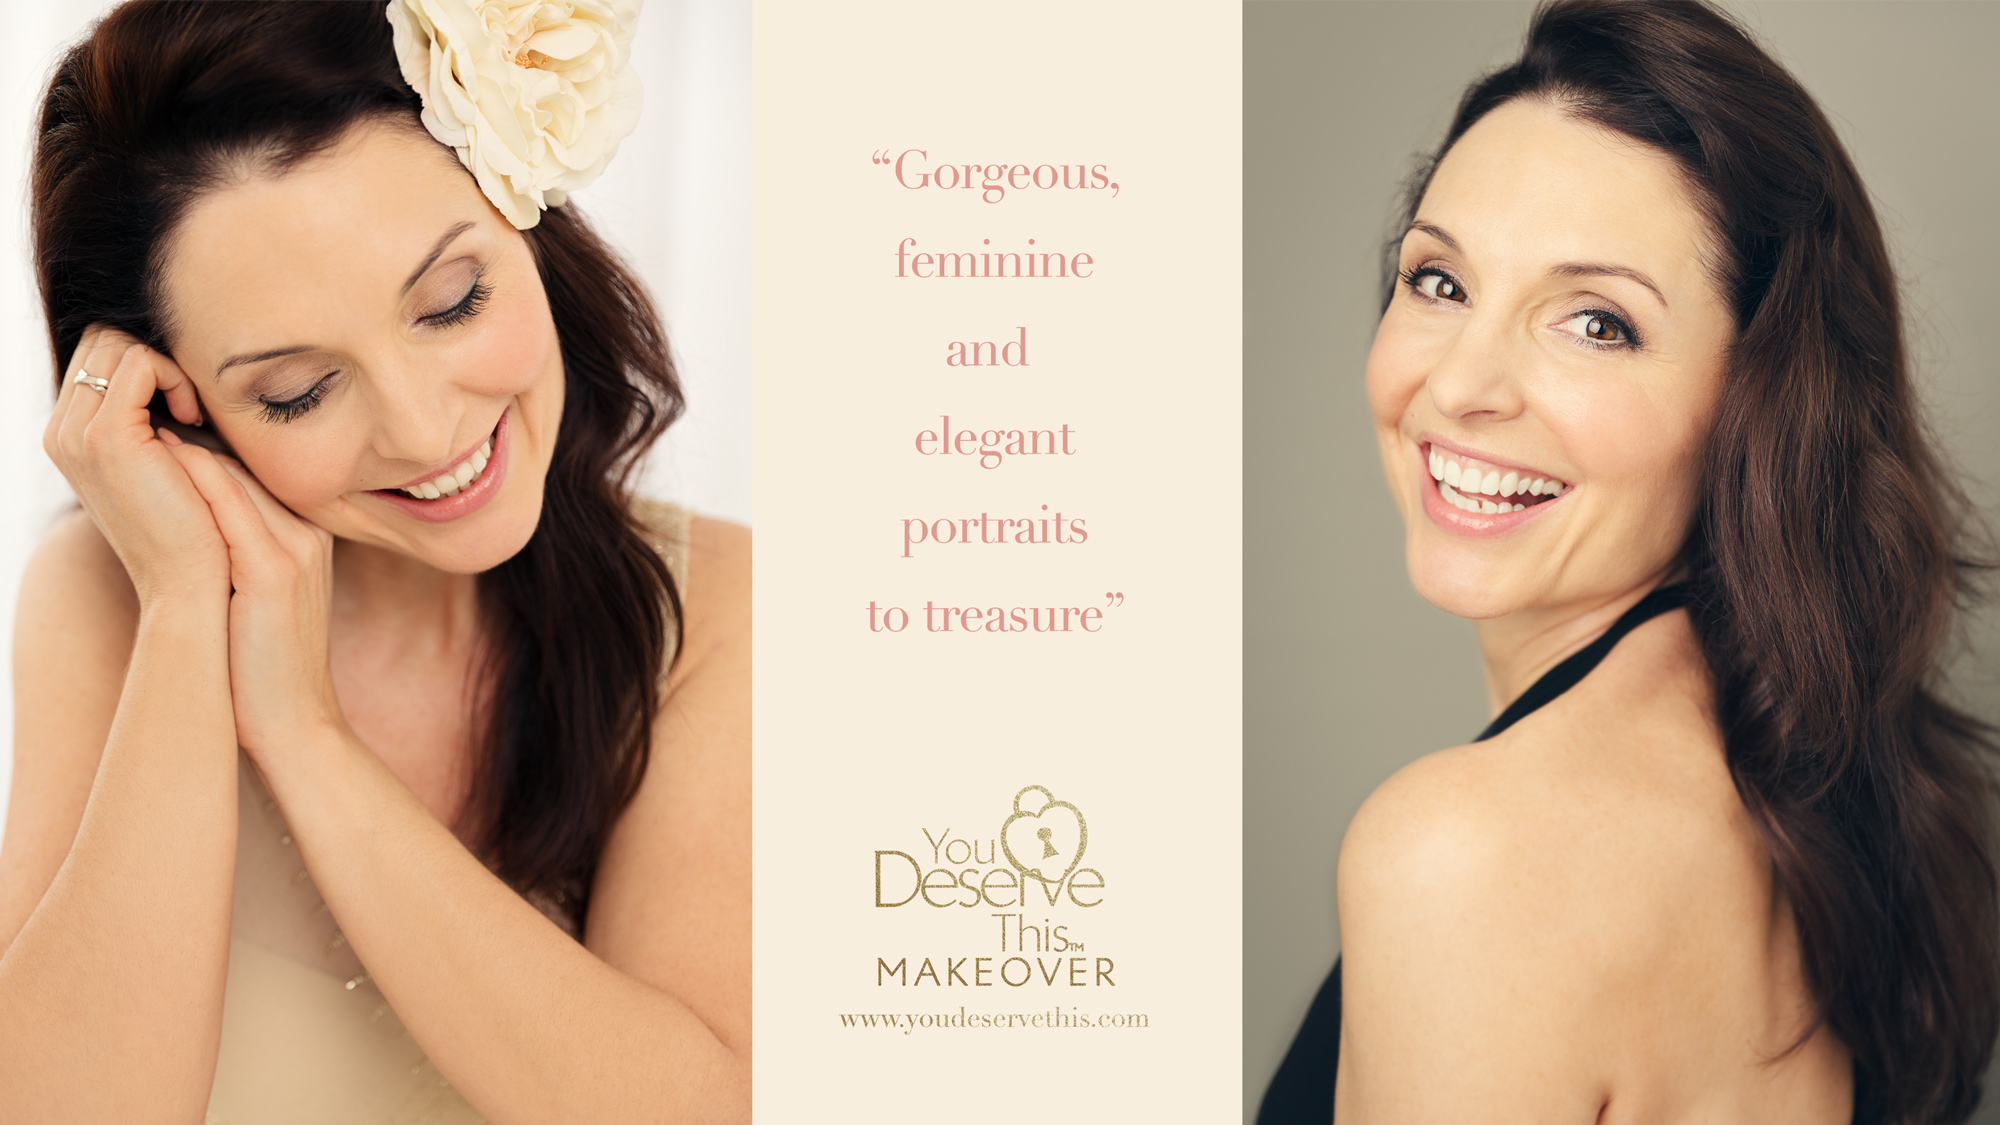 Treat Yourself to a Gorgeous Makeover - YouDeserveThis!